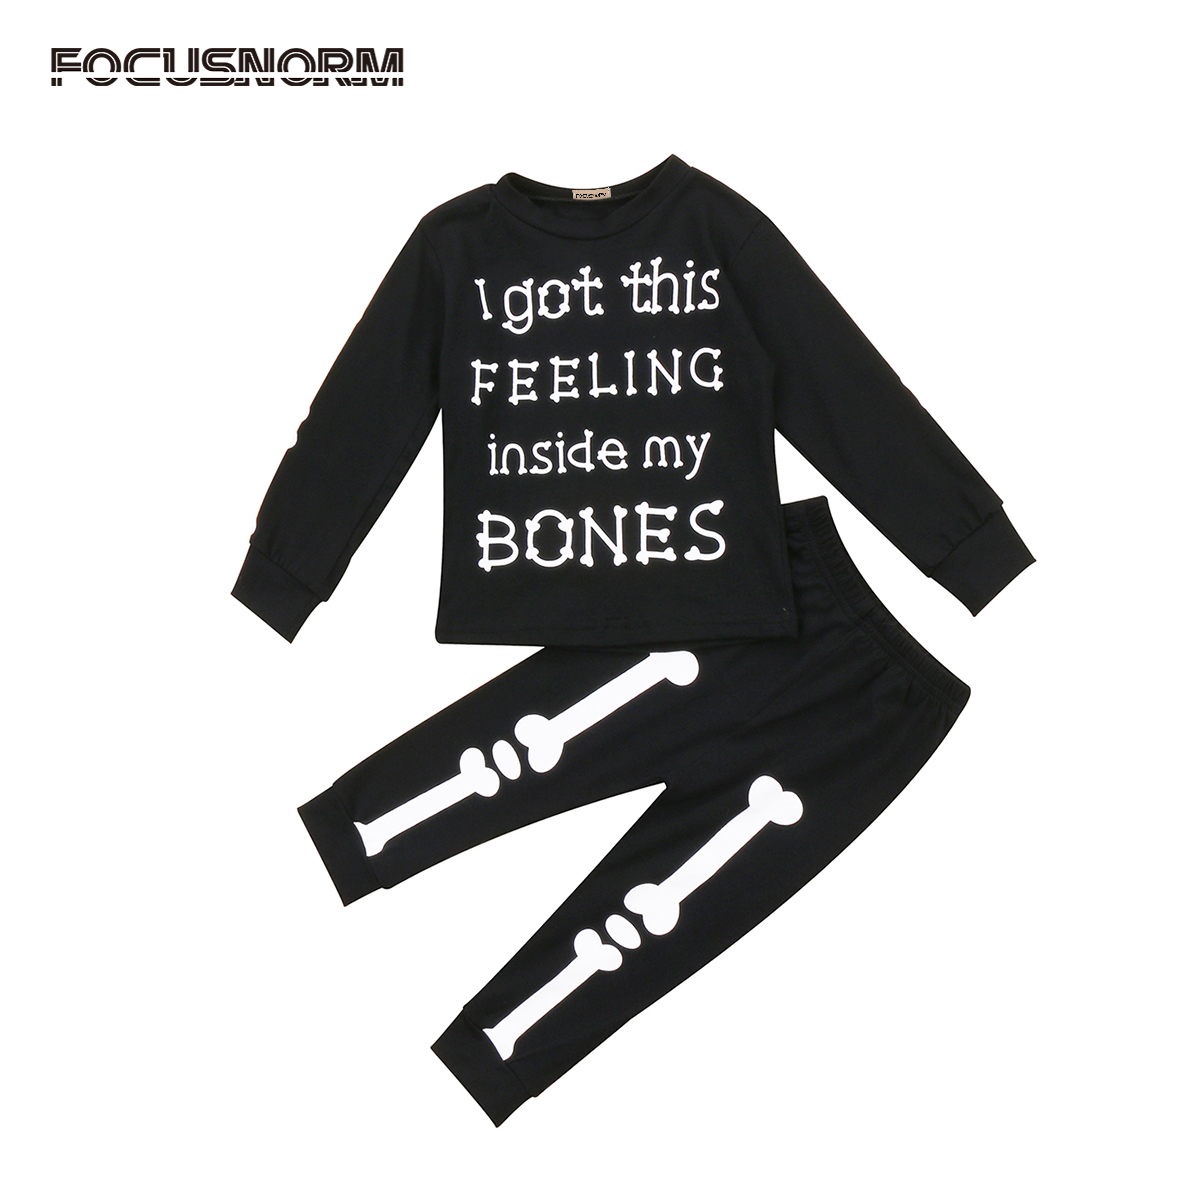 2017 Fashion Toddler Kids Baby Boy Girl Clothes Pullover Letter Print T-shirt+Bones Pants Leggings Halloween Outfits 2pcs Set